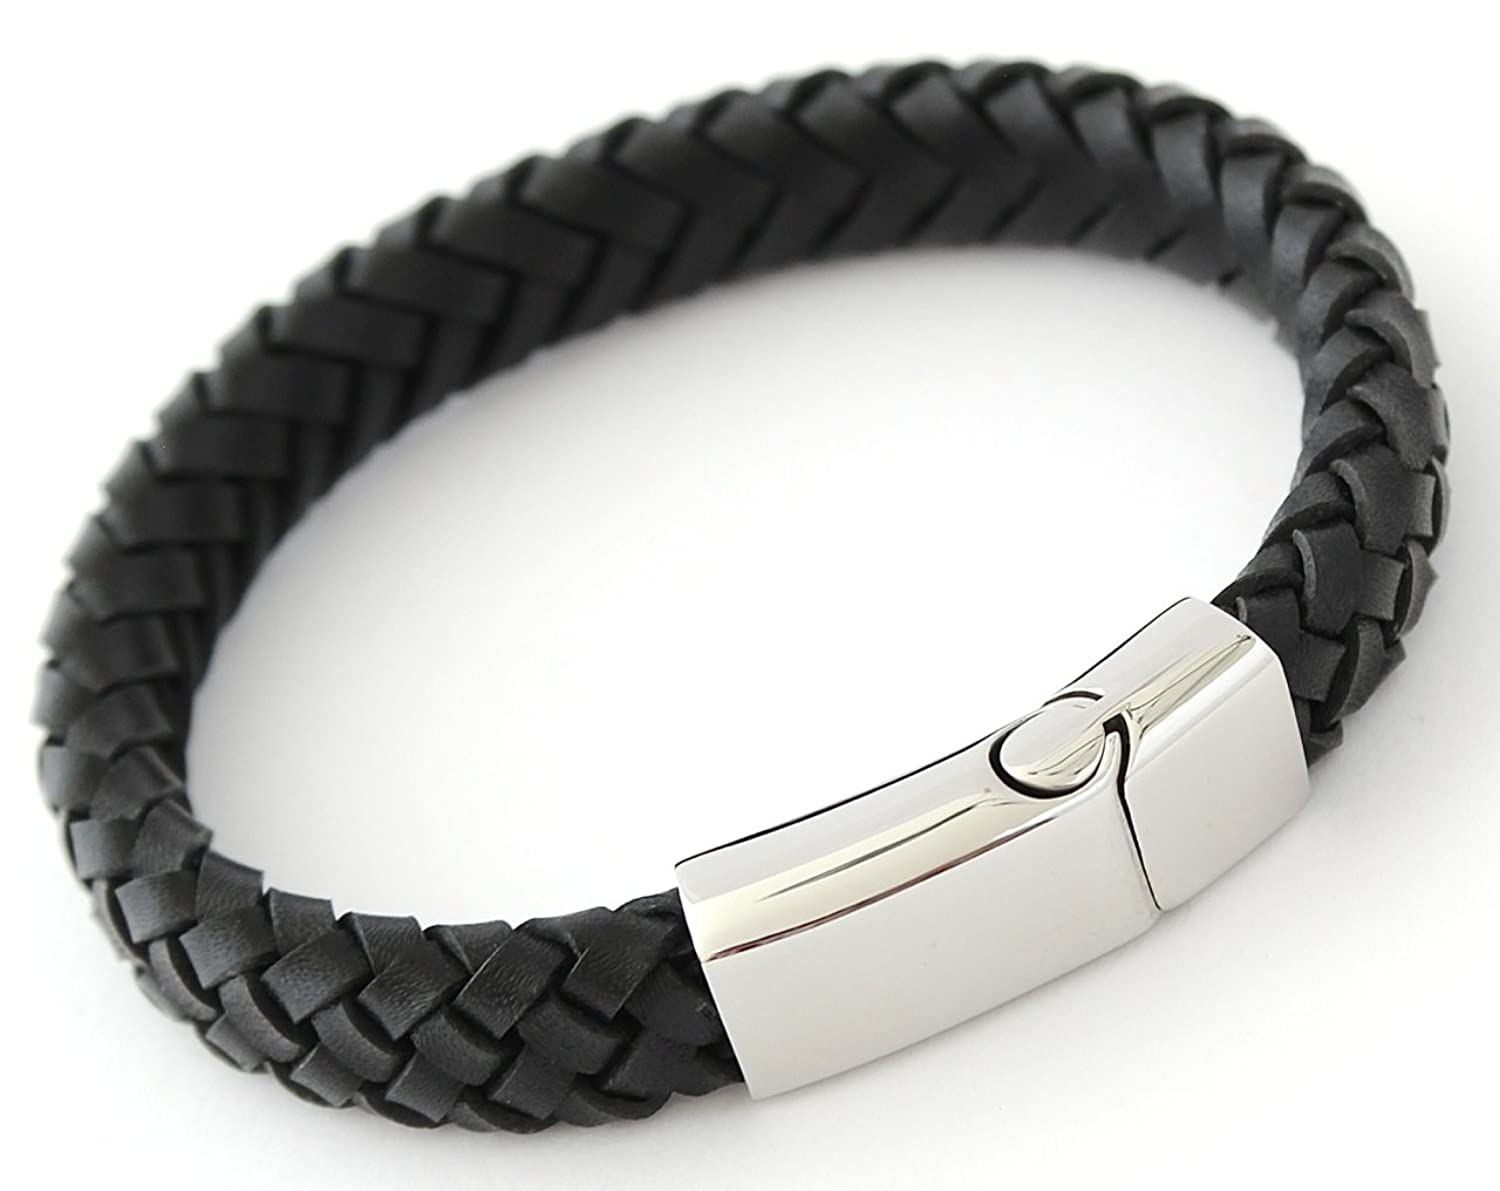 men s braided the strap silver bracelet black watches mens clasp luxury vincero leather products croc double dress italian